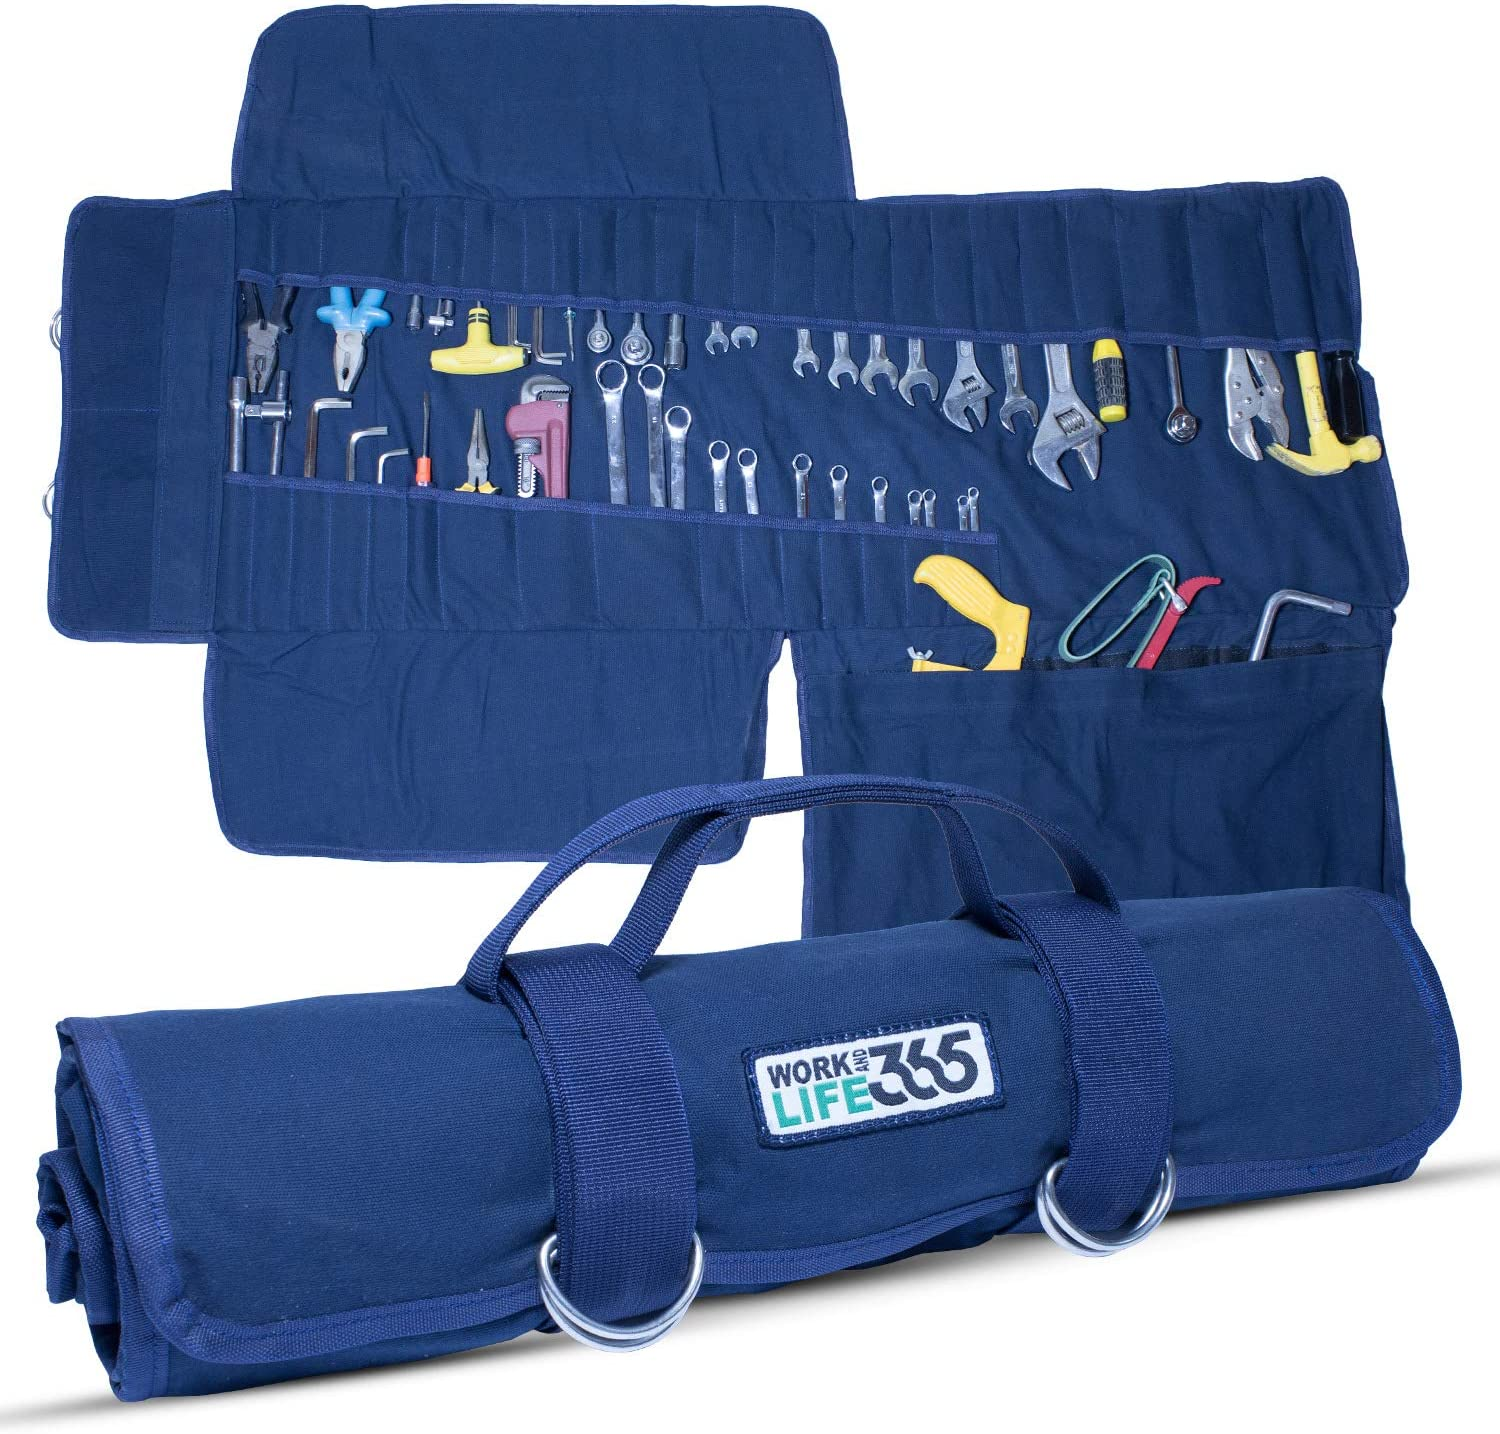 WorkandLife365 Tool Year-end annual account Roll Organizer Cheap mail order specialty store Jumbo-sized - Water Resistant